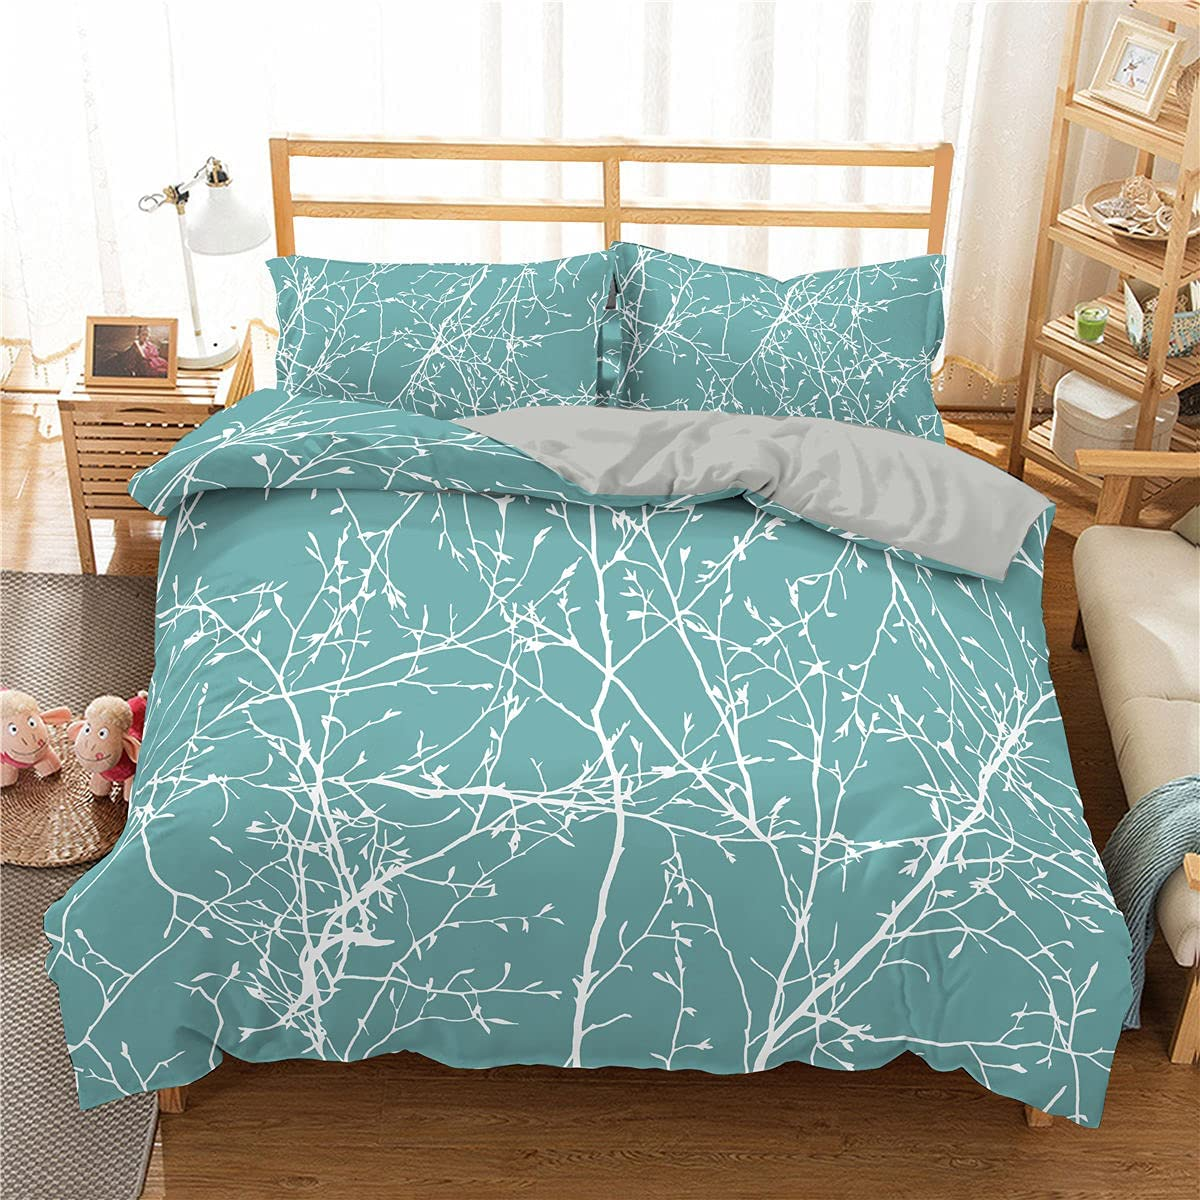 Super special price Plant Bedding Set 3D Branch with Printed Limited price Duvet Pillowcase Cover